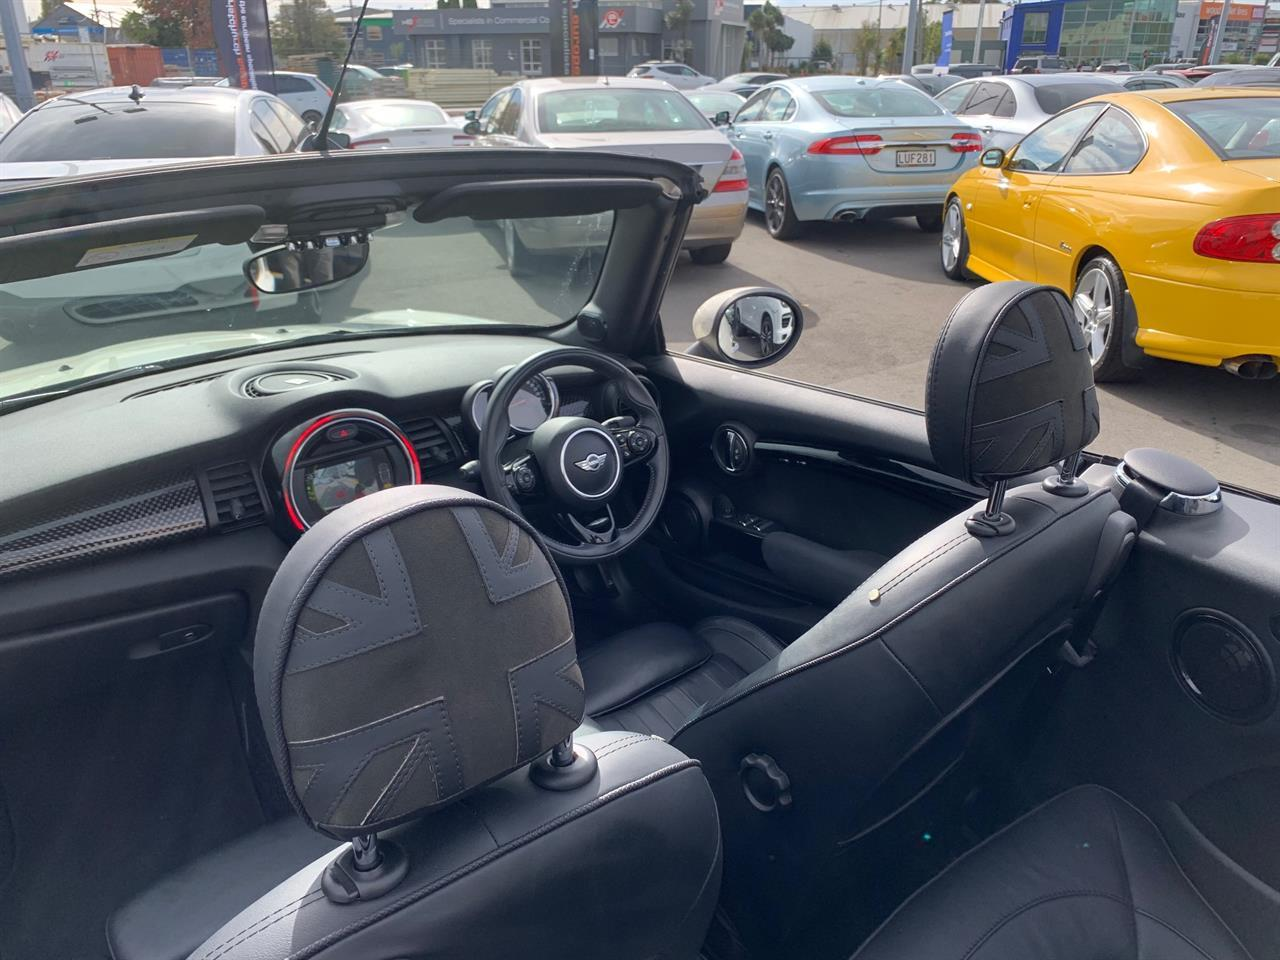 image-7, 2018 Mini Cooper S 2.0T 6 Speed Manual Cabriolet N at Christchurch